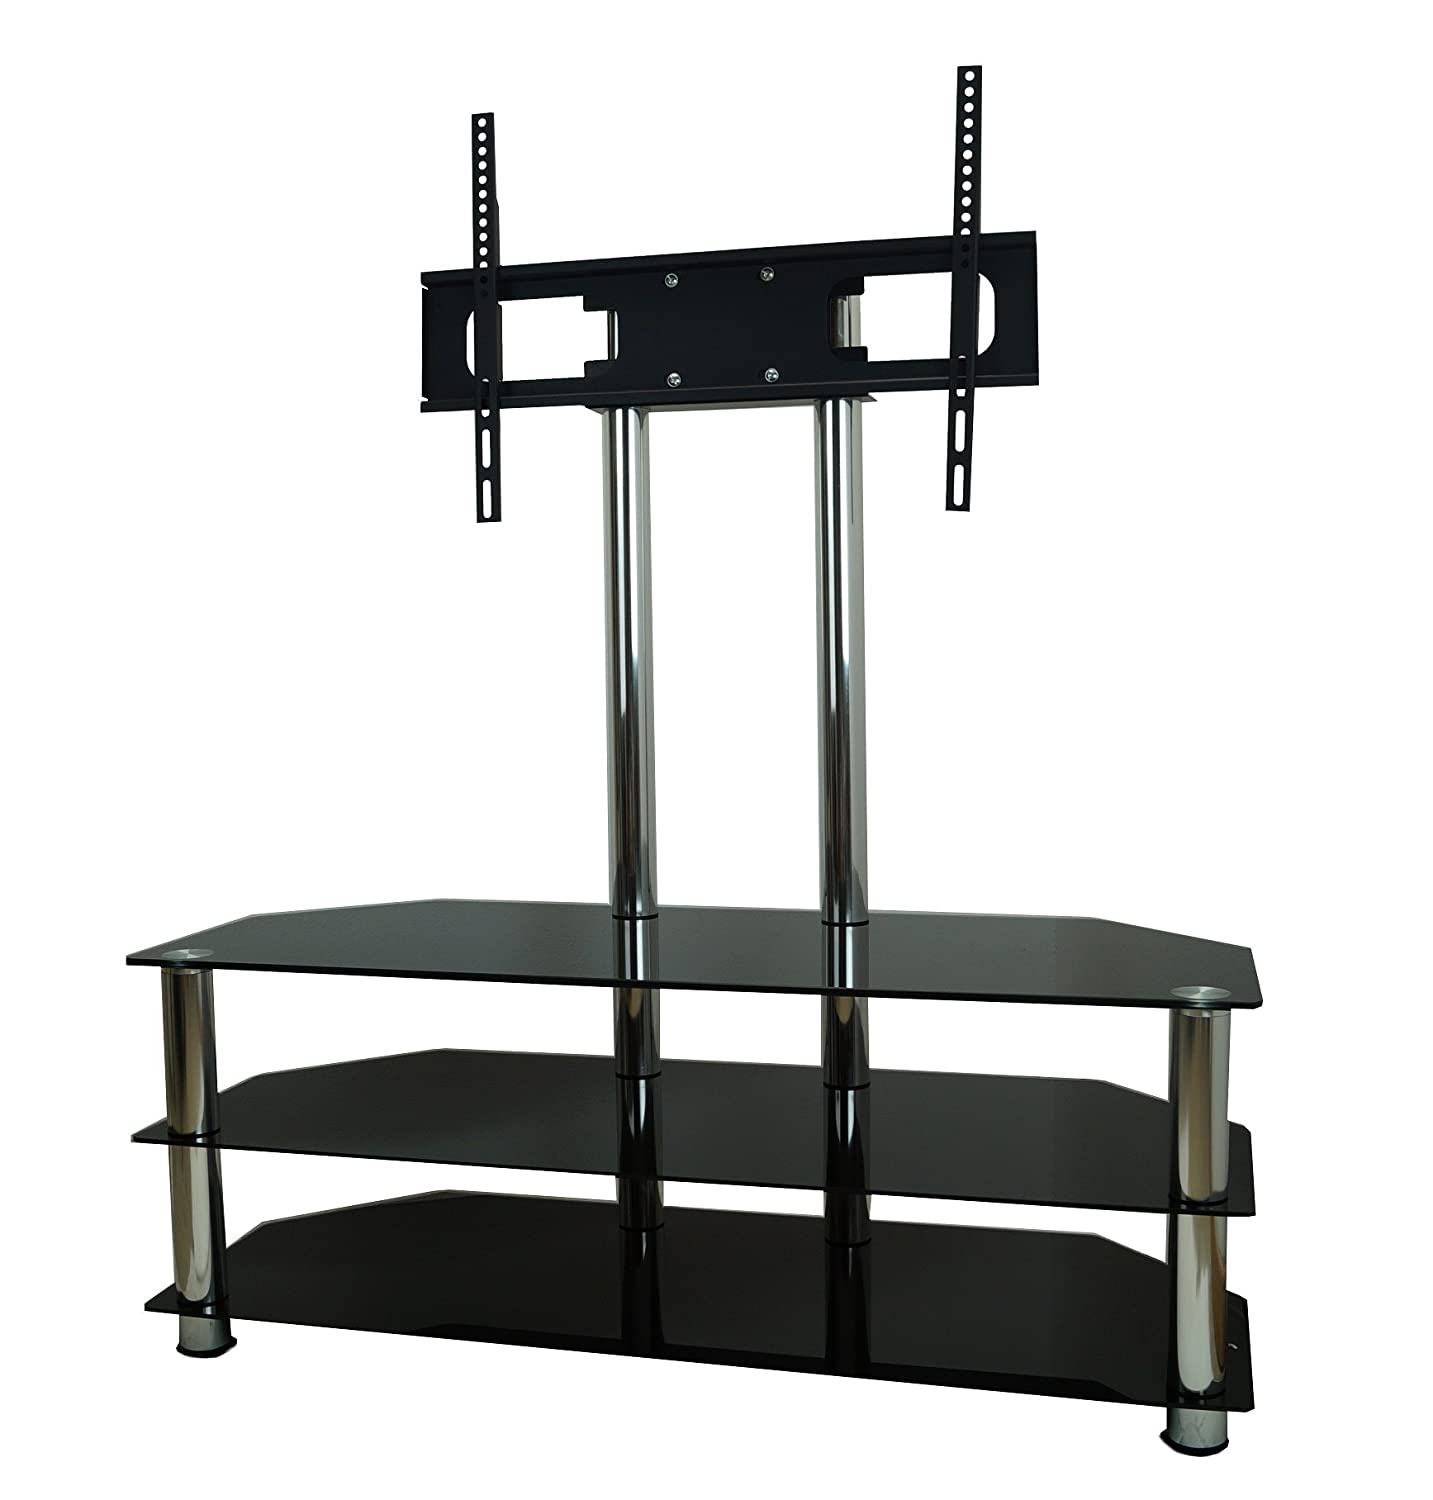 mountright UMS5 Cantilever Glass TV Stand For Up To 60 Inch Screens